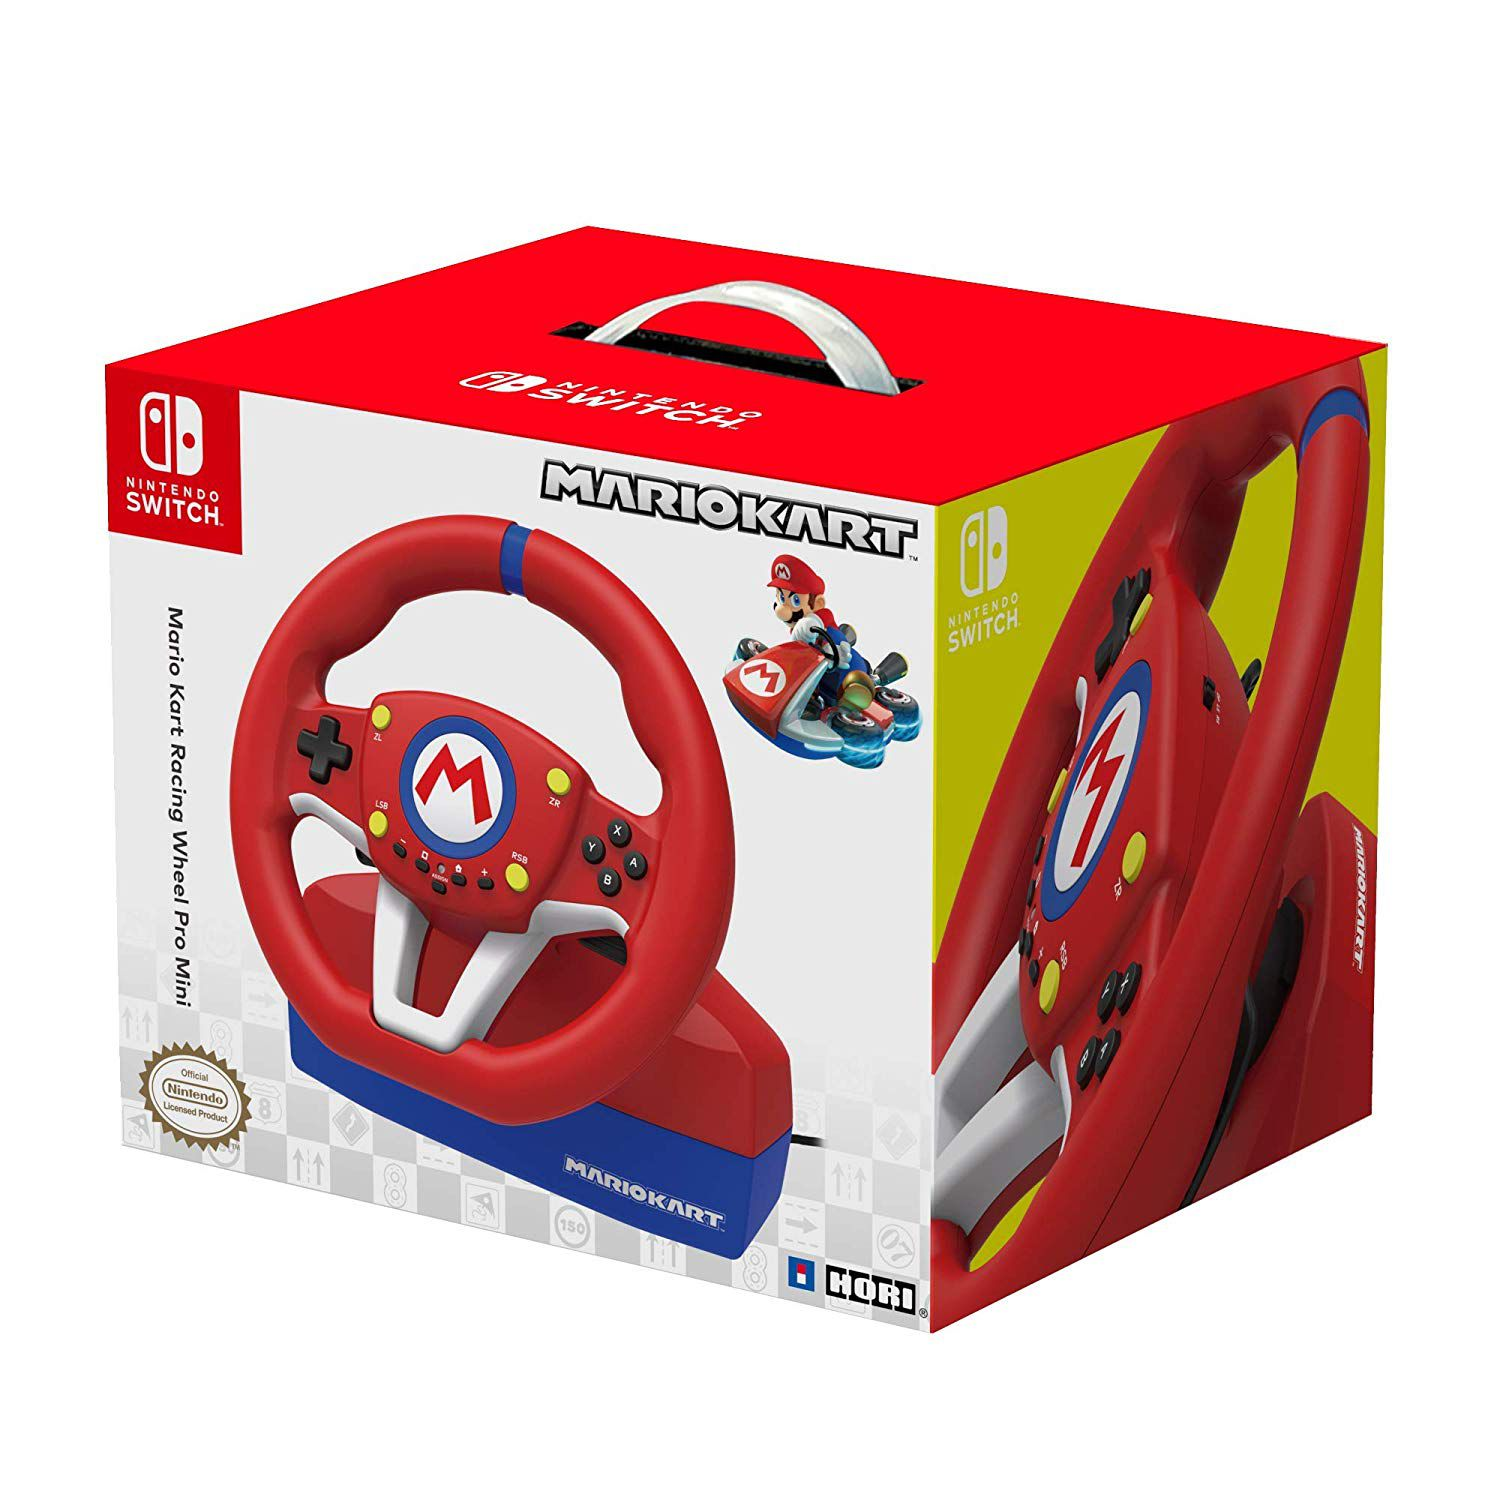 Volante para Nintendo Switch Mario Kart Racing Wheel PRO Mini - Vermelho